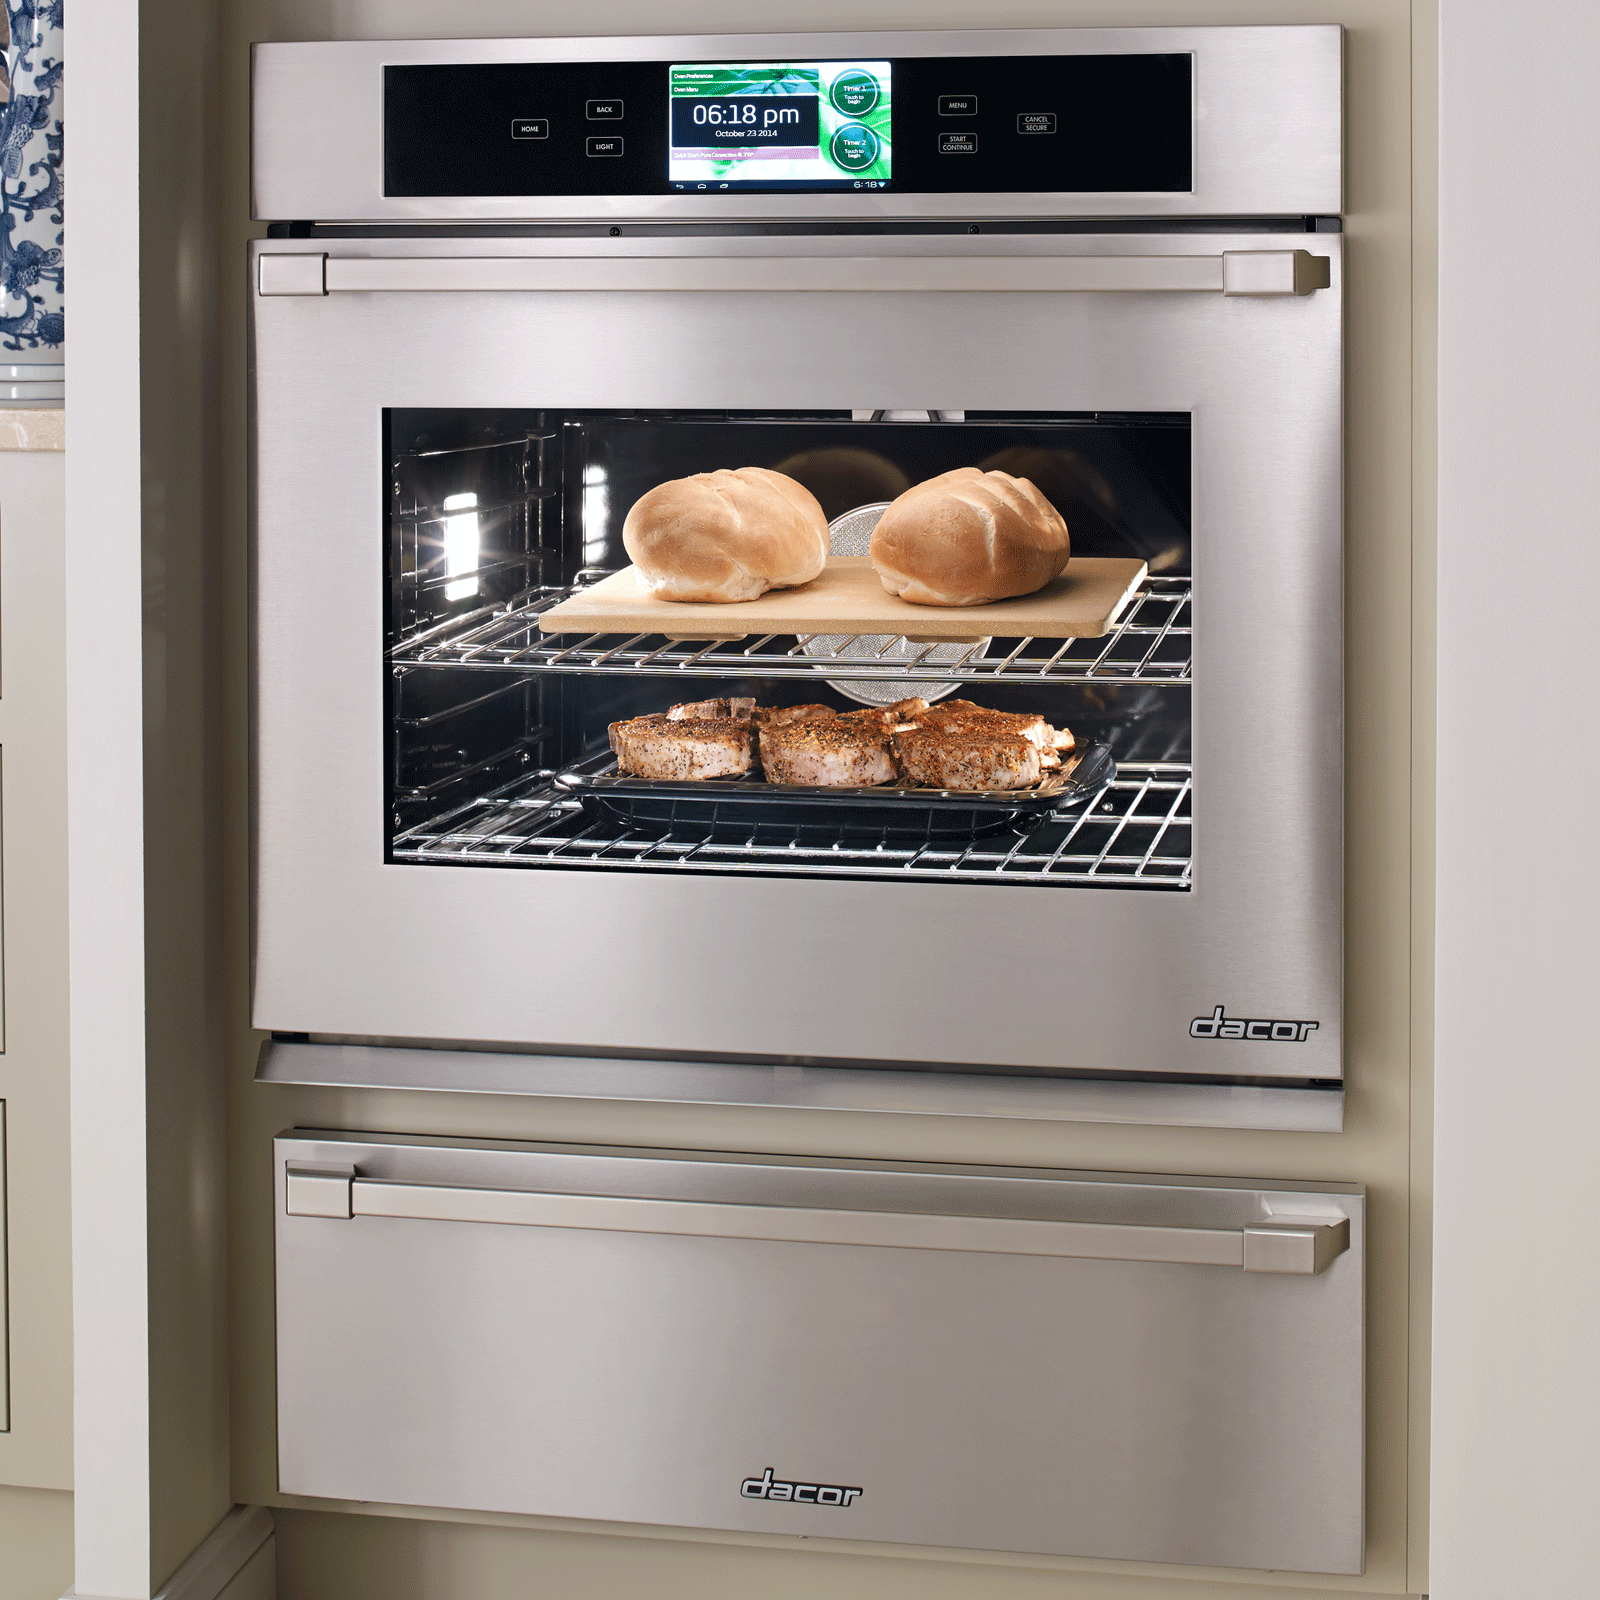 gallery wall warming microwave drawer photos affinity wordpress home thermador and oven design with